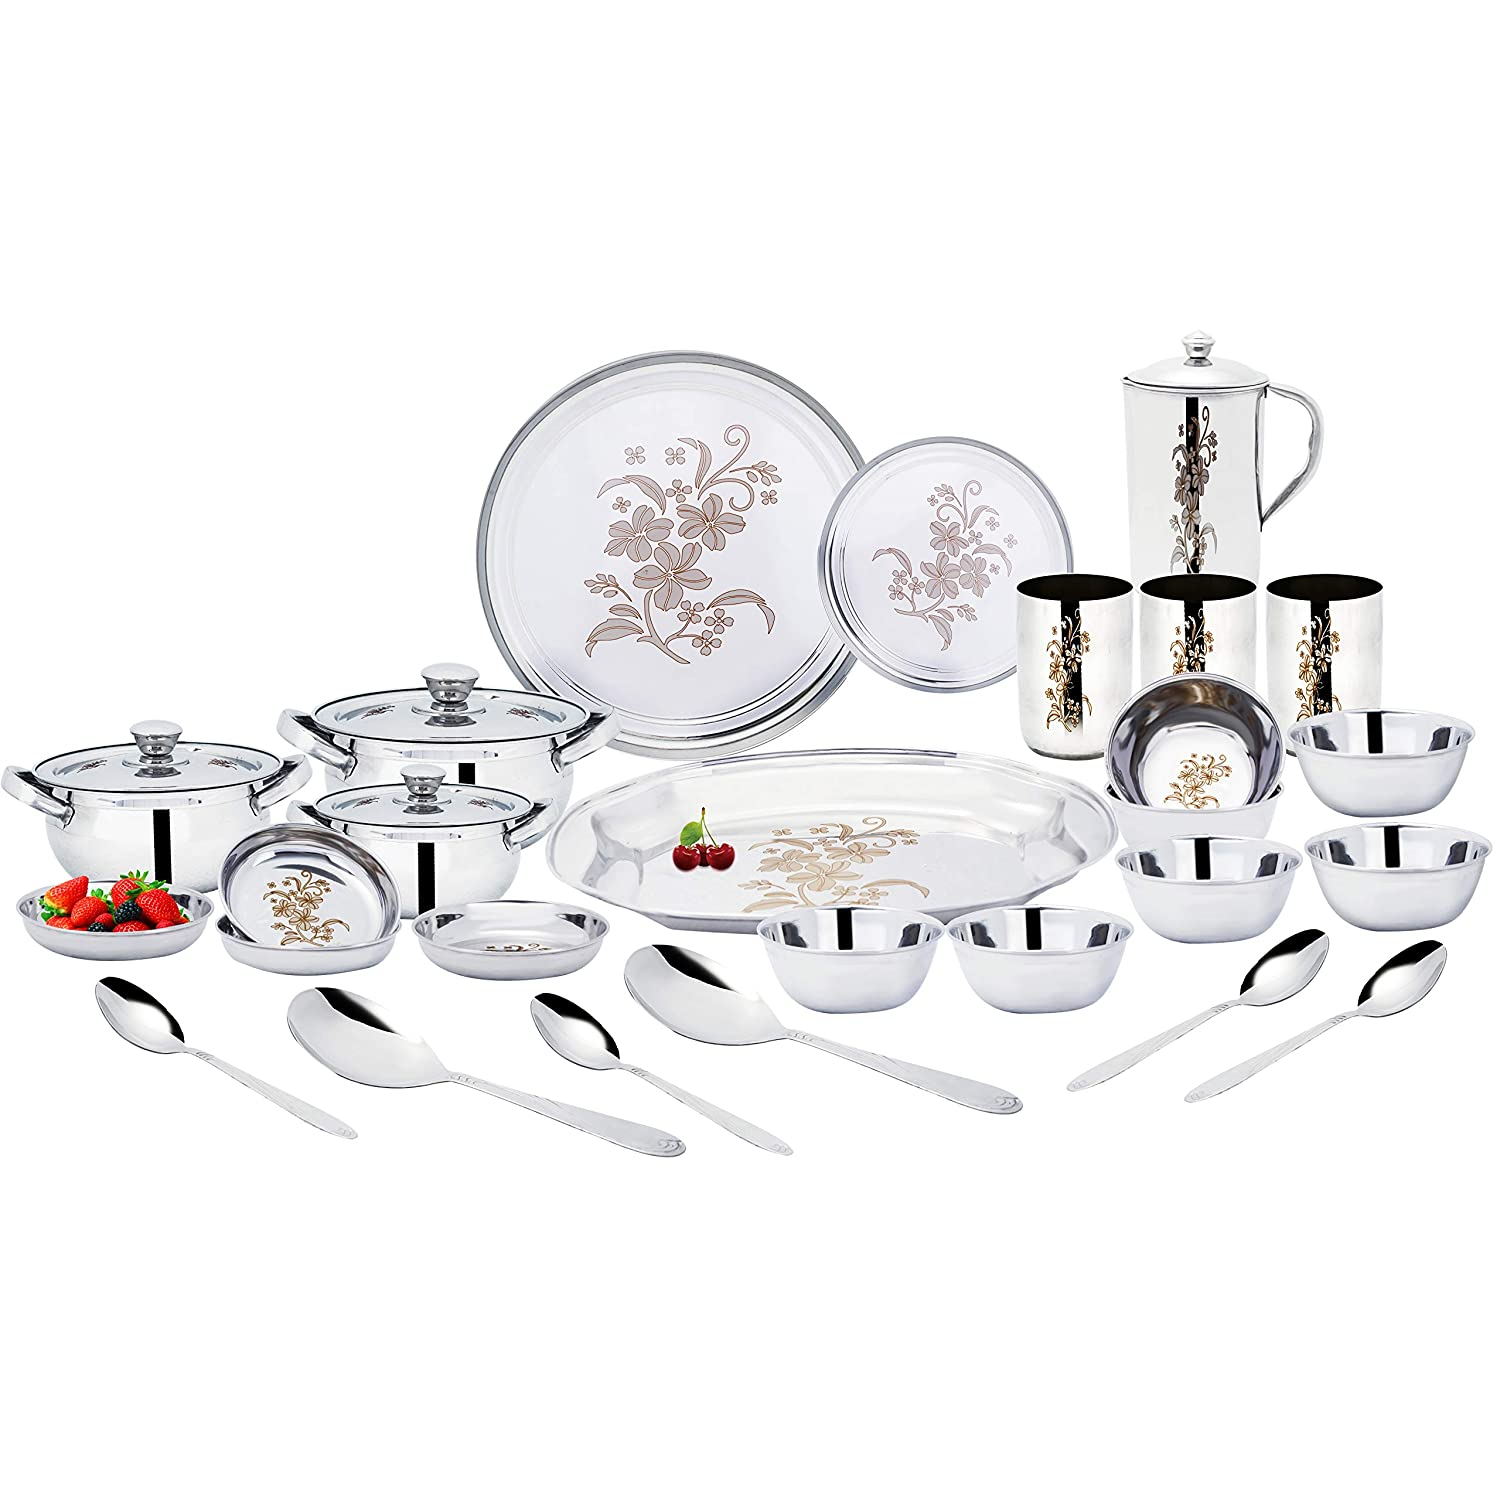 Uddhav Gold Collection Stainless Steel 51 pcs Dinner Set